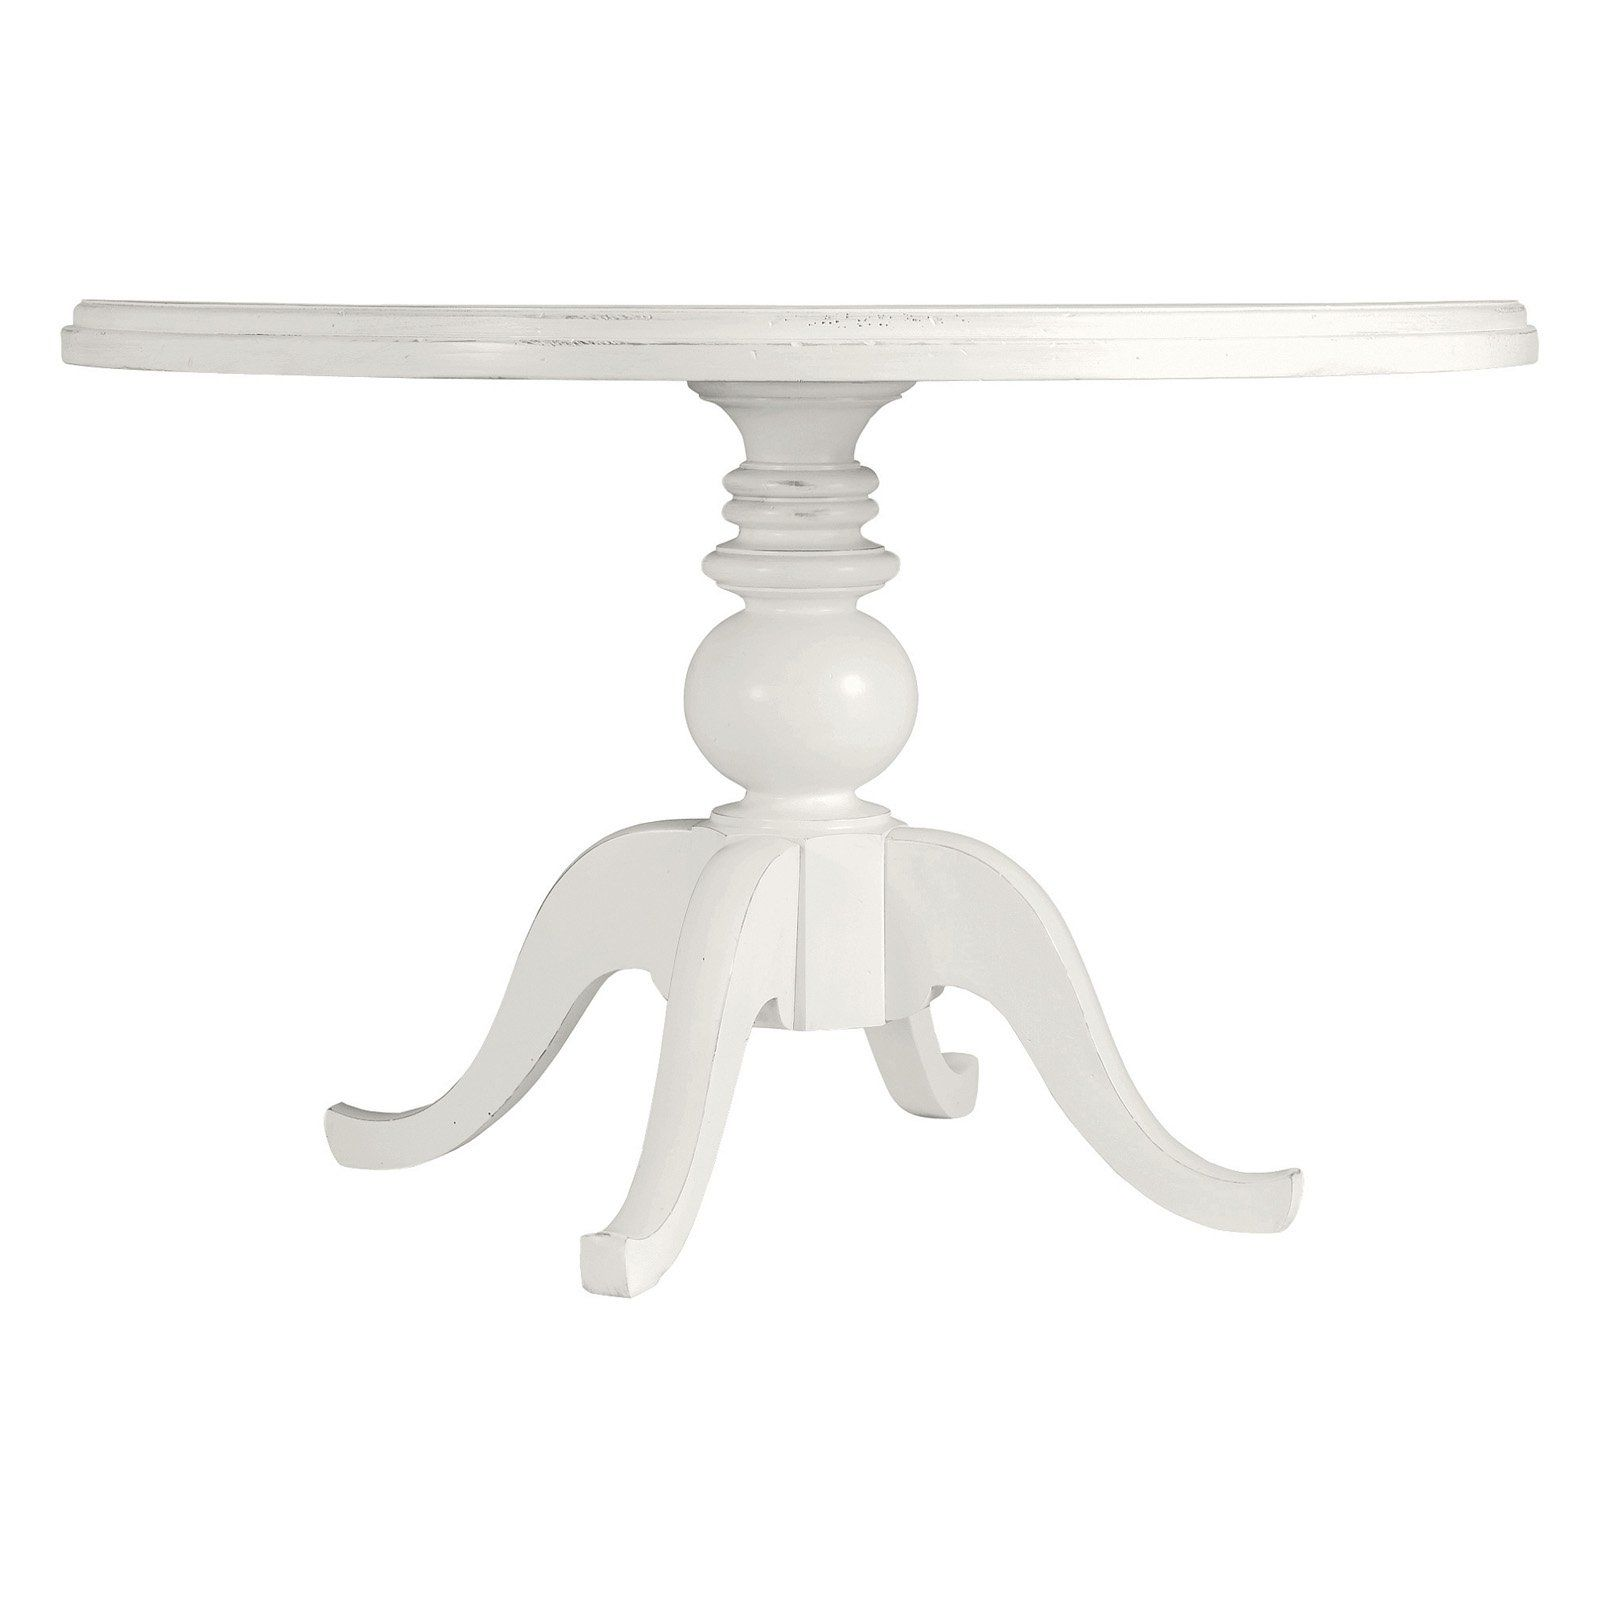 Stanley Furniture Coastal Living Retreat Round Pedestal Table From Мебель Идеи